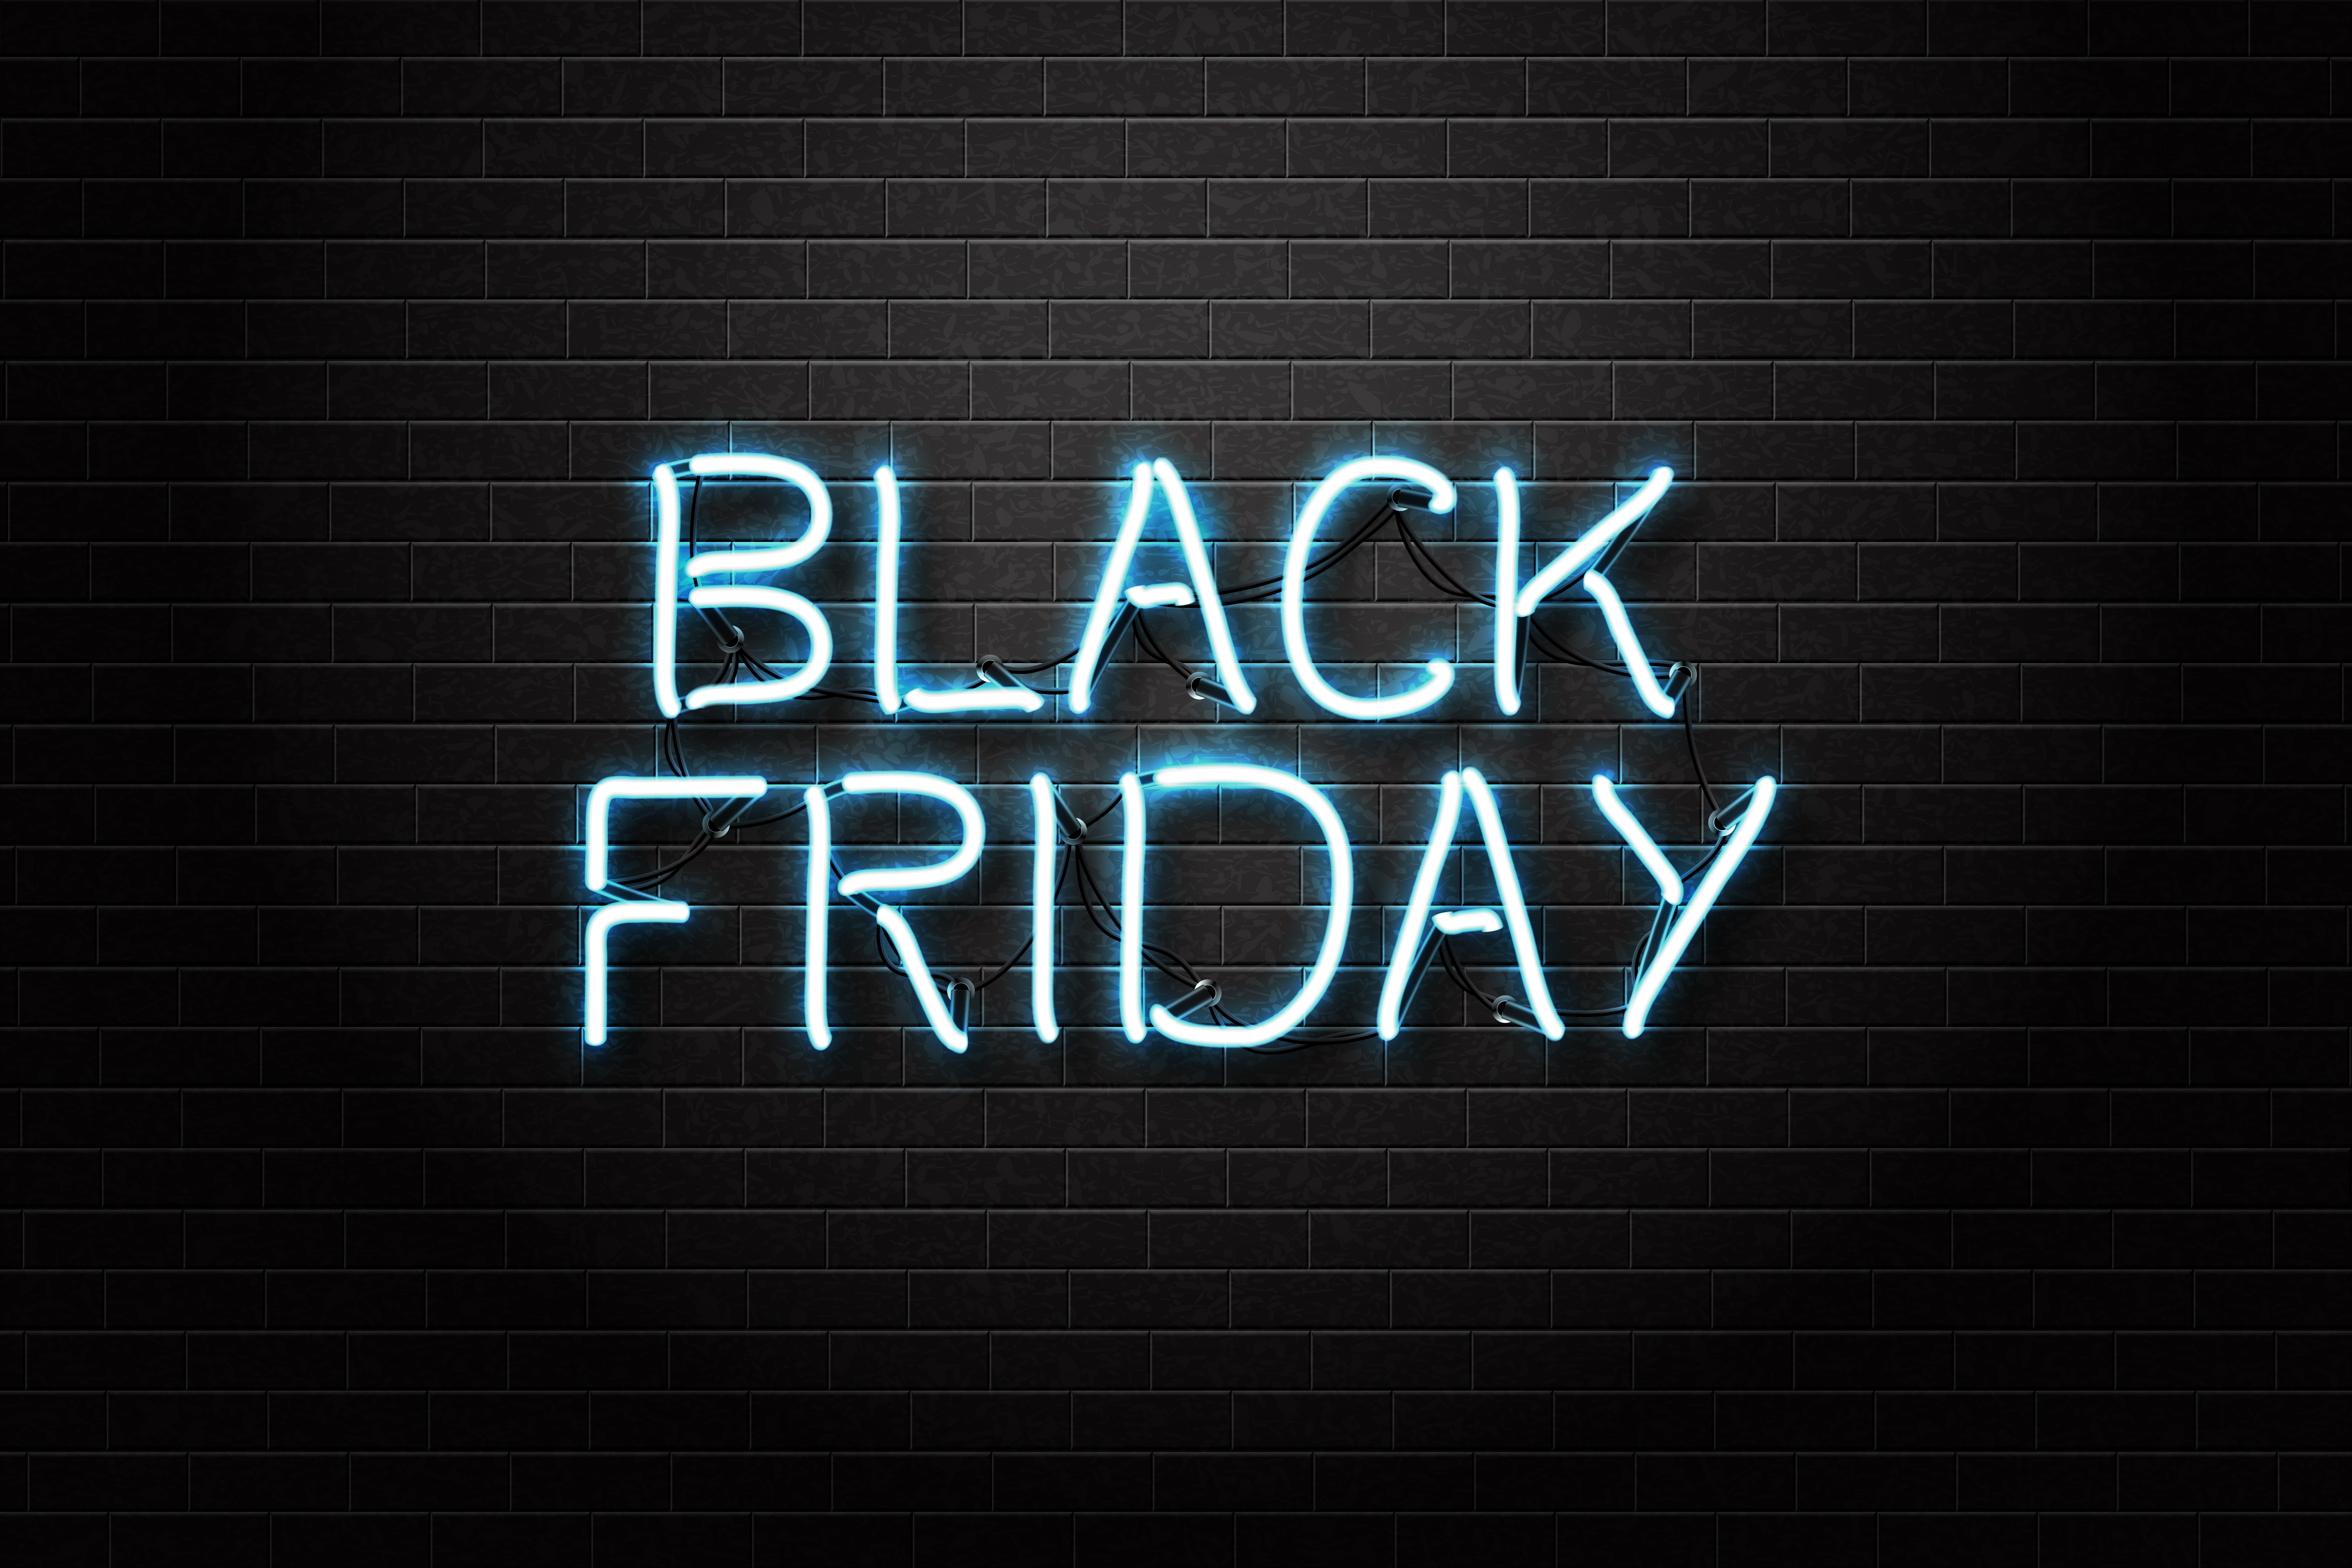 A Black Friday point of sale solution is critical to holiday success.